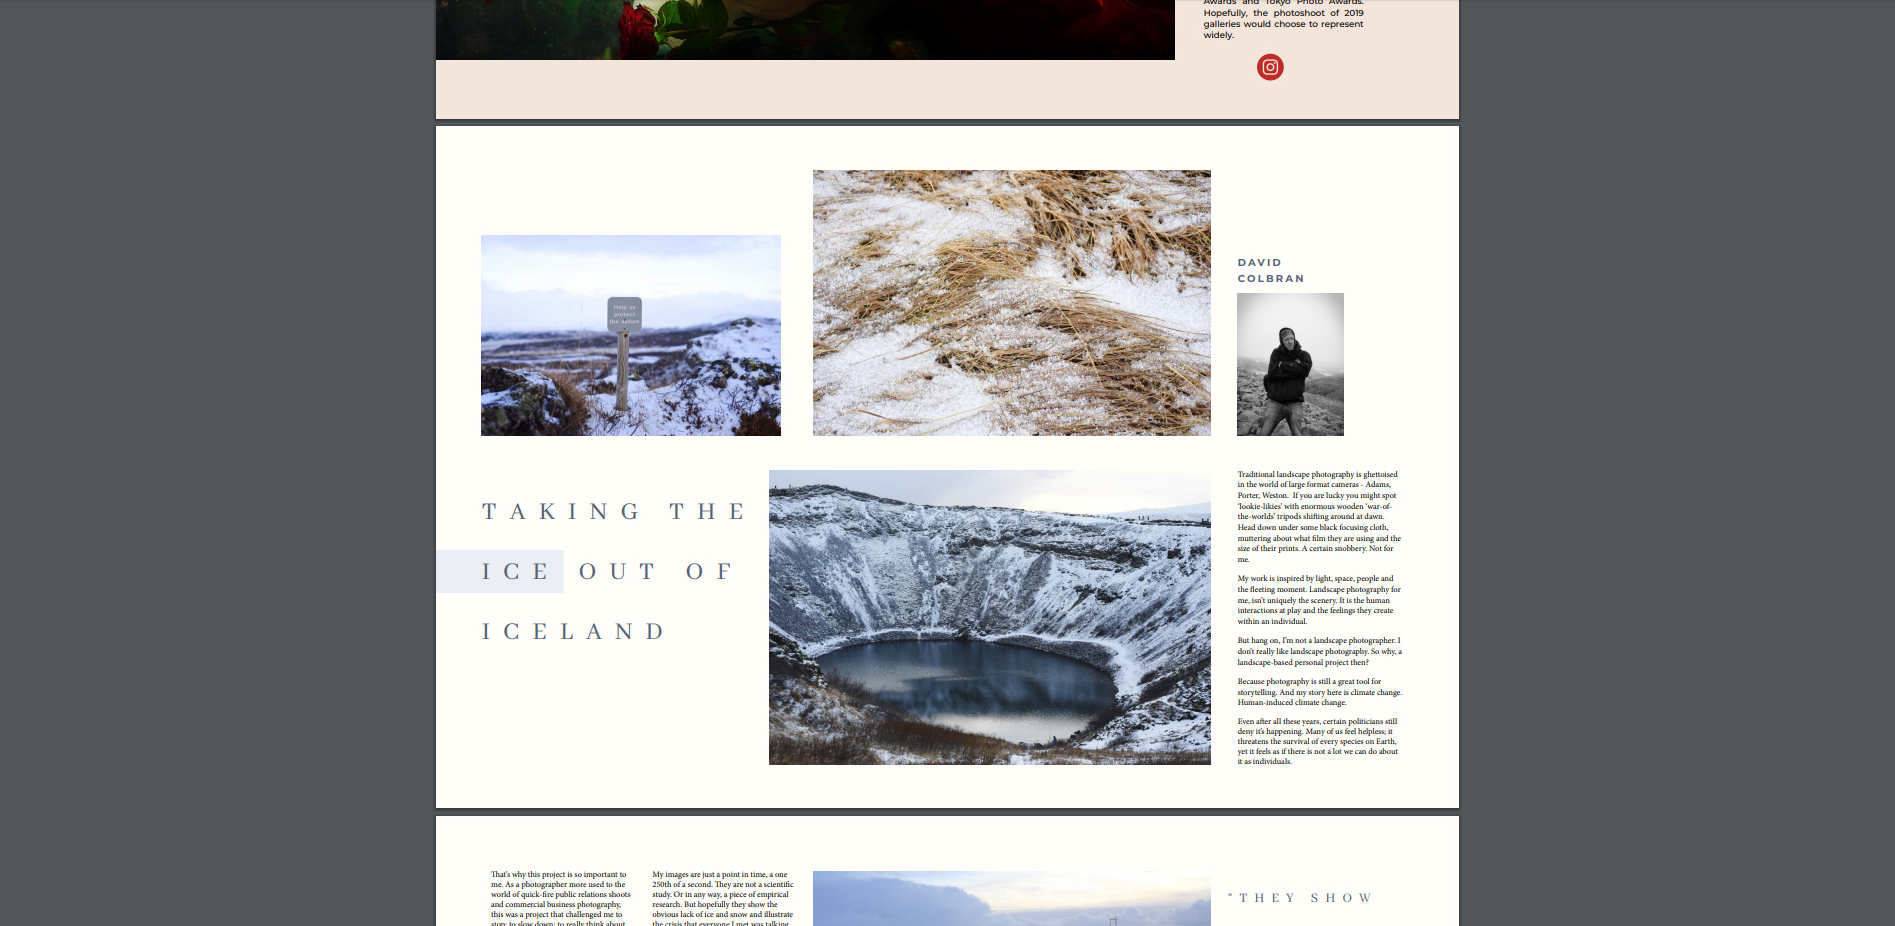 Academy photography magazine tear sheet